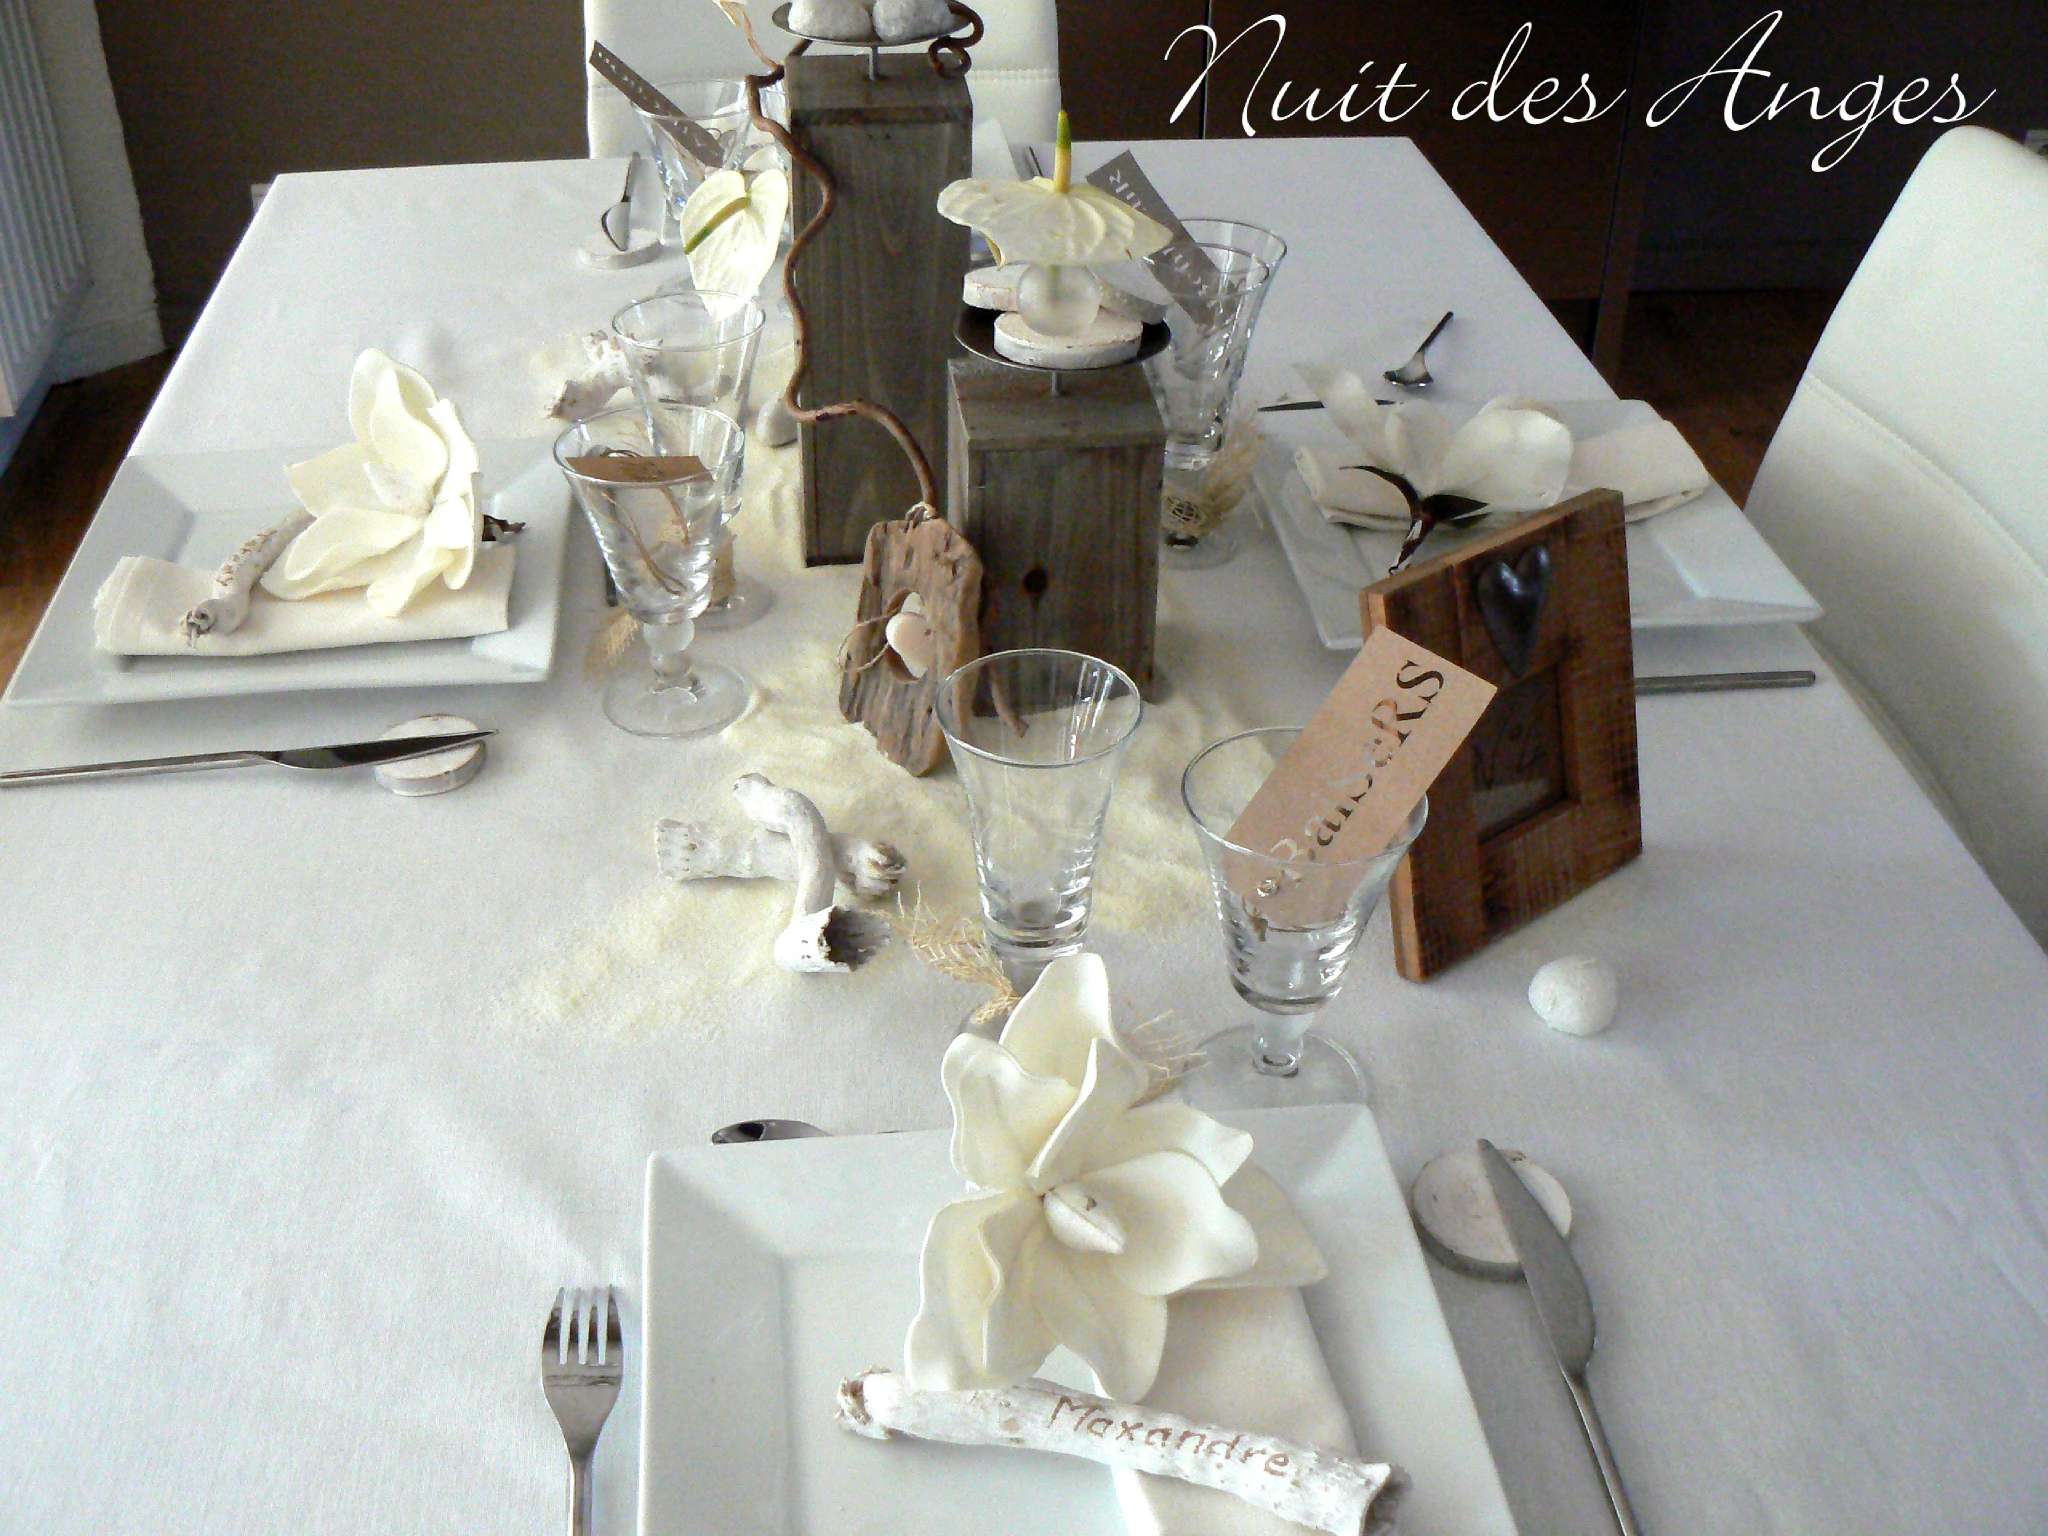 D coration de table bois flott nuit des anges - Decoration avec photo ...